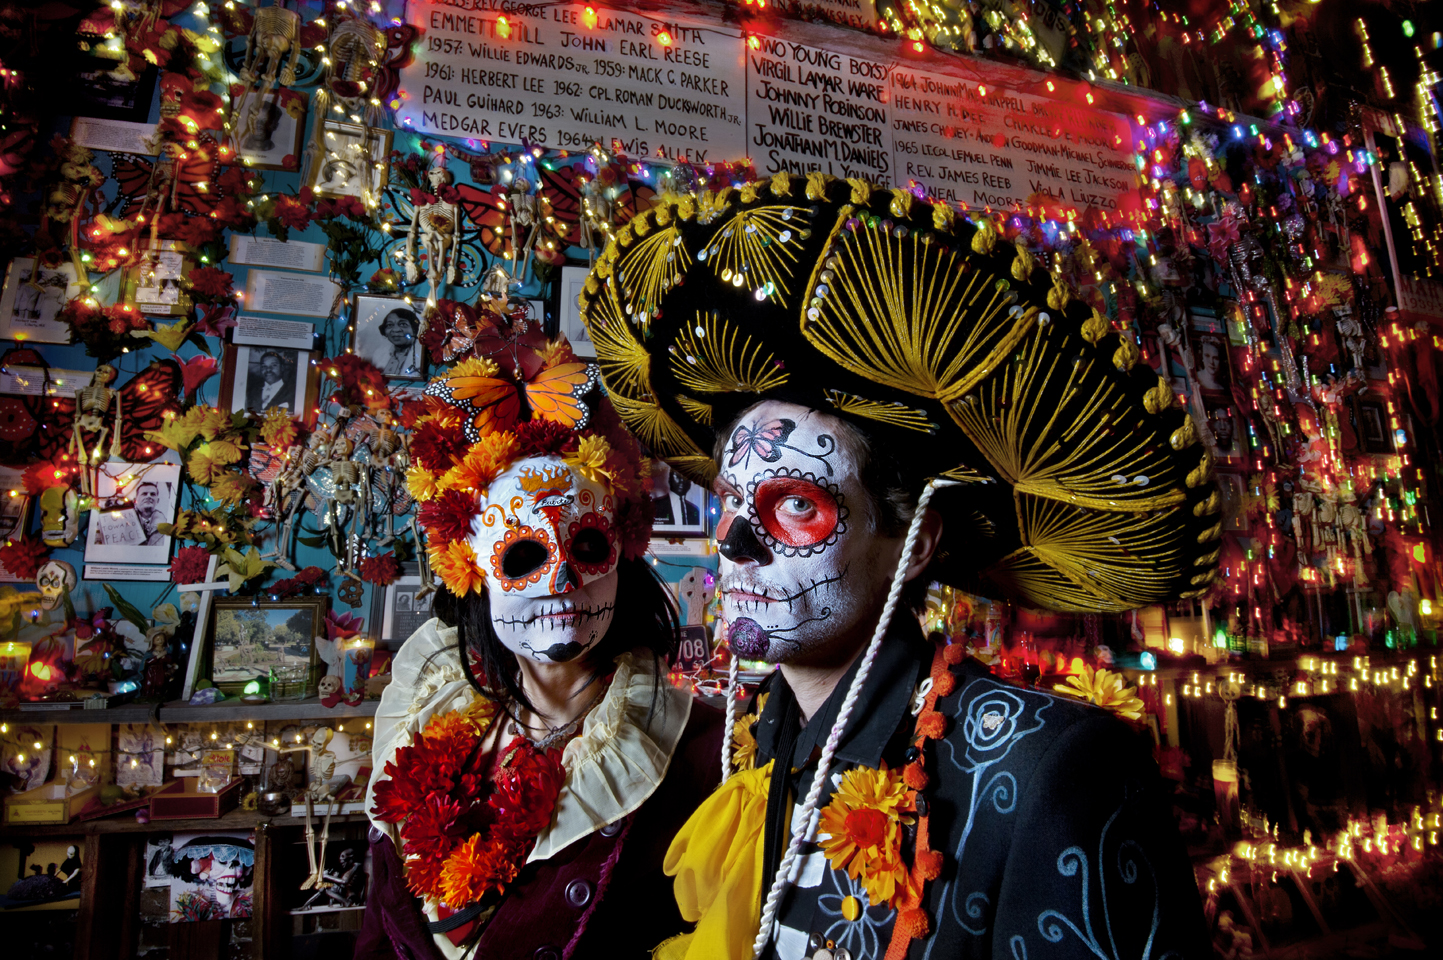 Day of the Dead: Happy and Colorful Fest in Mexico - Guacamole Cocina Mexicana